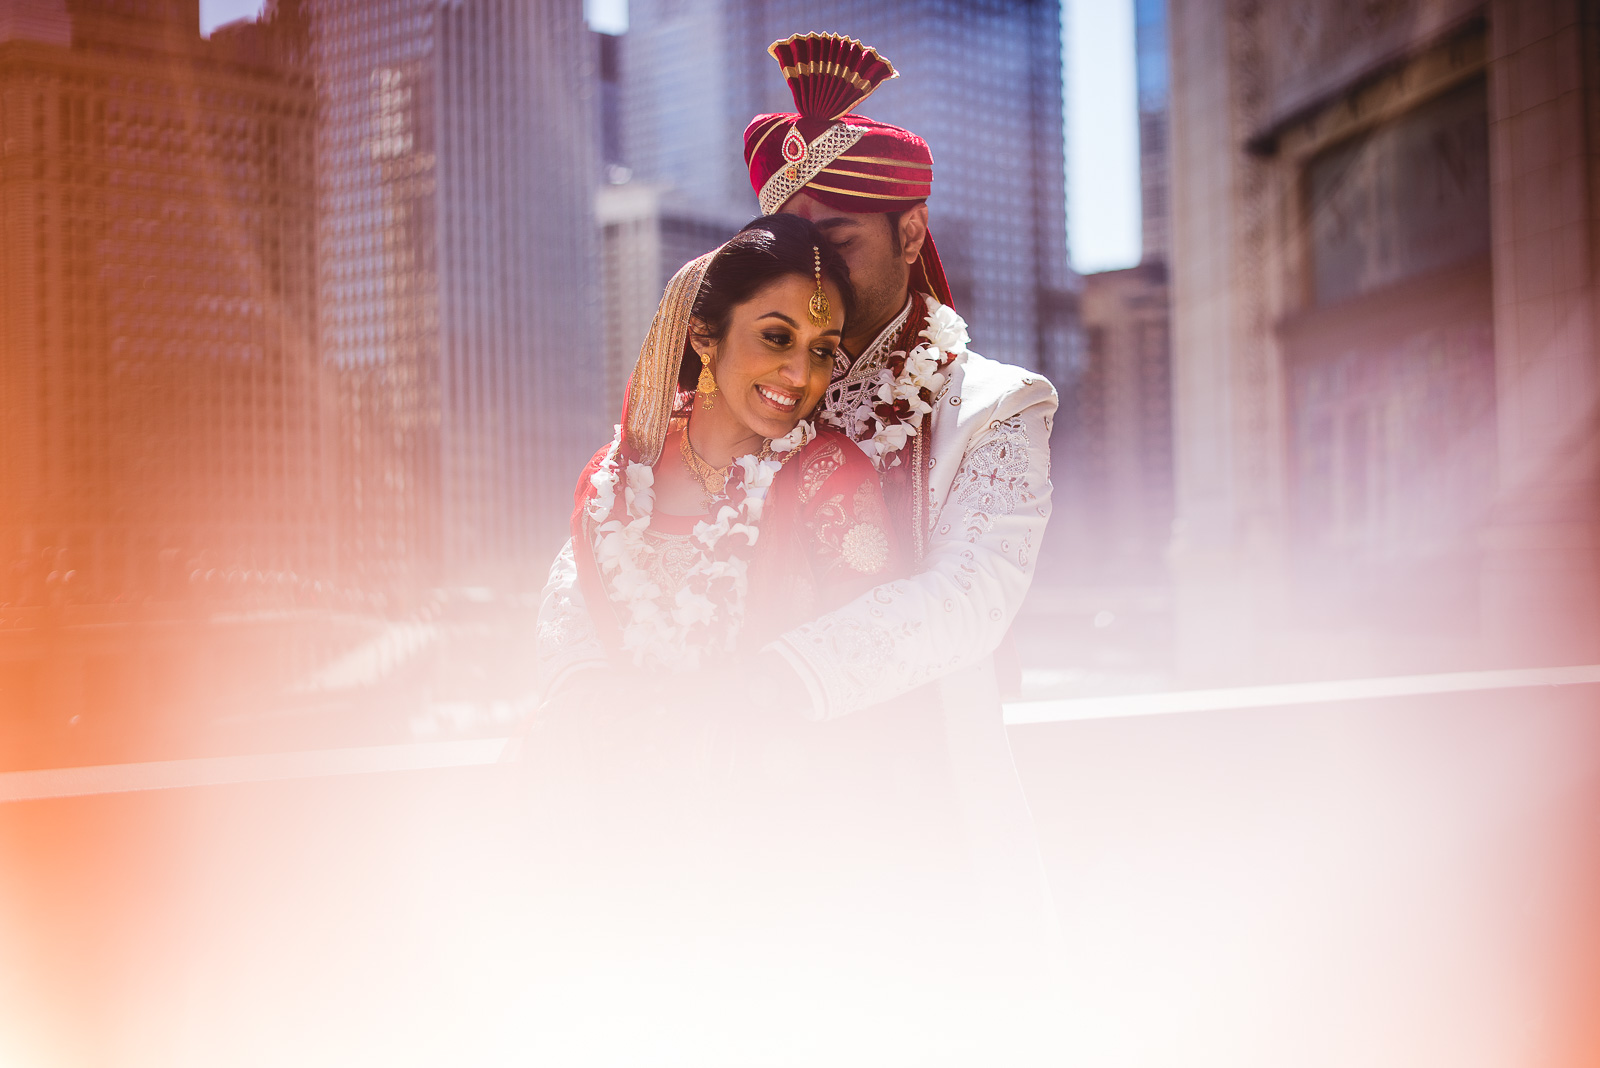 20 chicago wedding photographer best portraits during weddings review 1 - 2018 in Review // My Favorite Chicago Wedding Photography Portraits